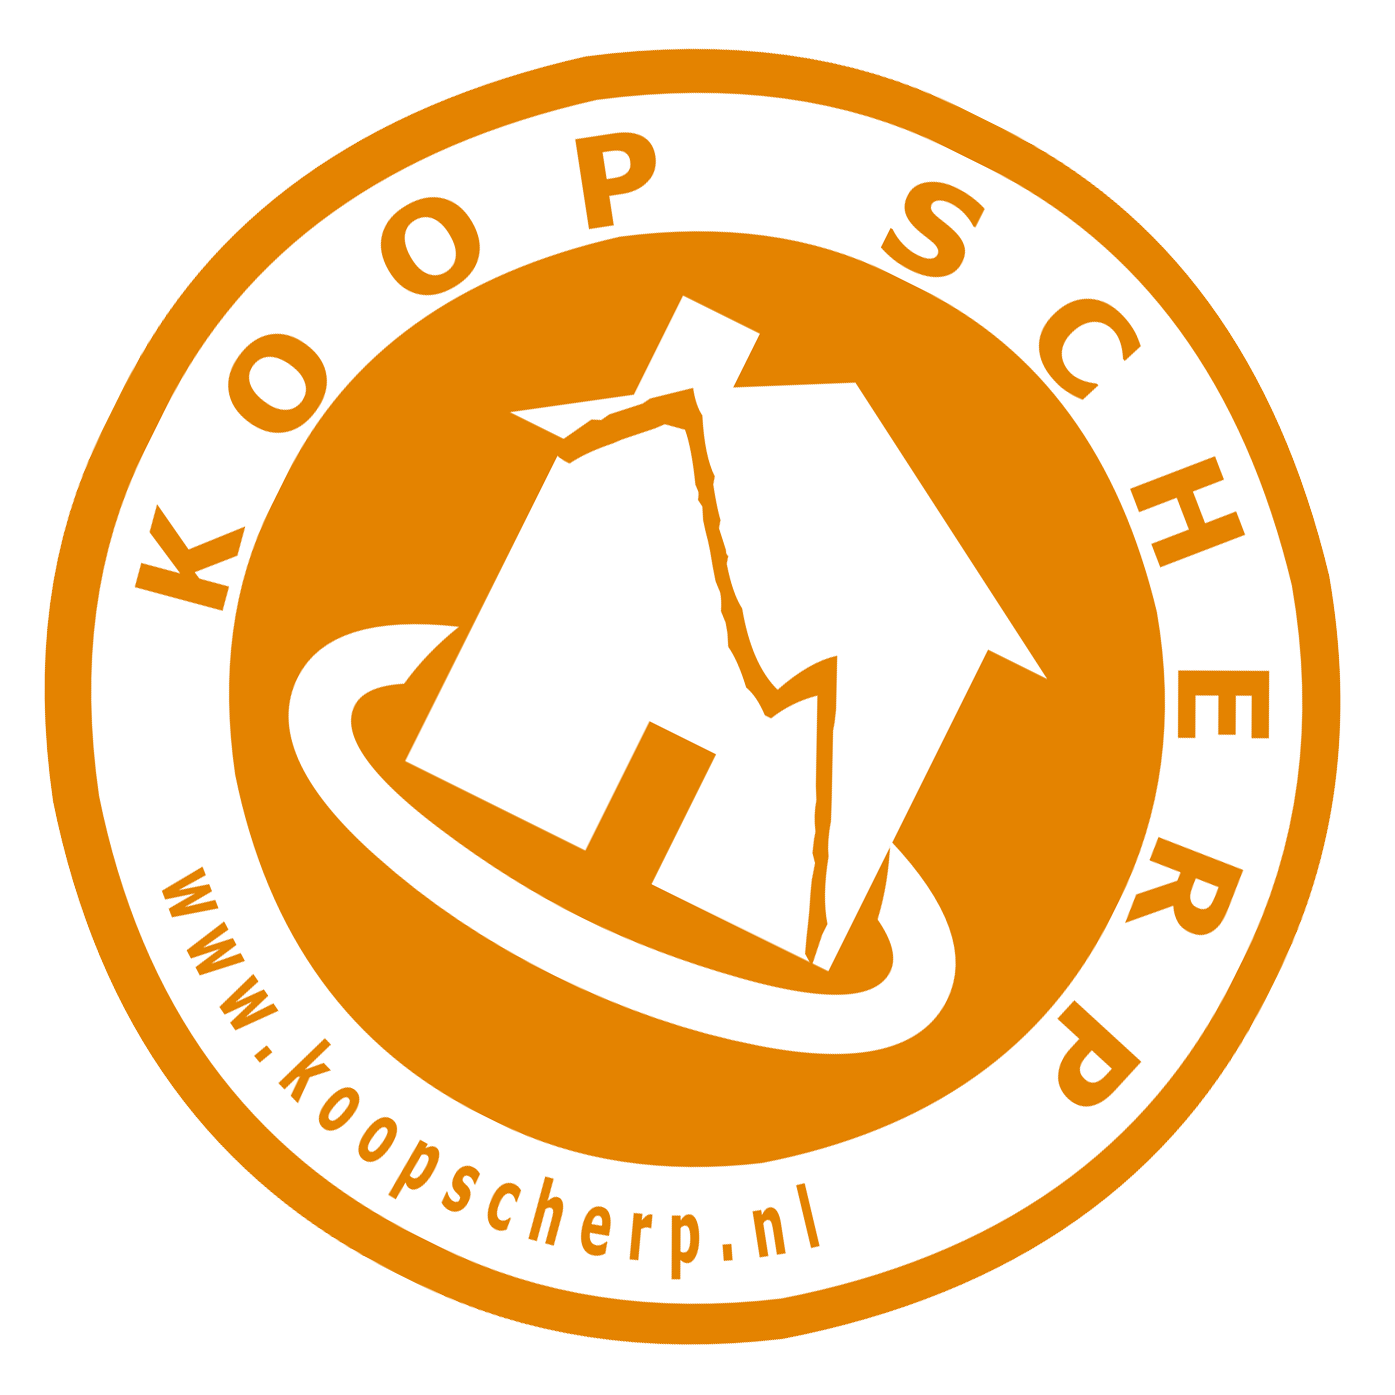 Koop scherp